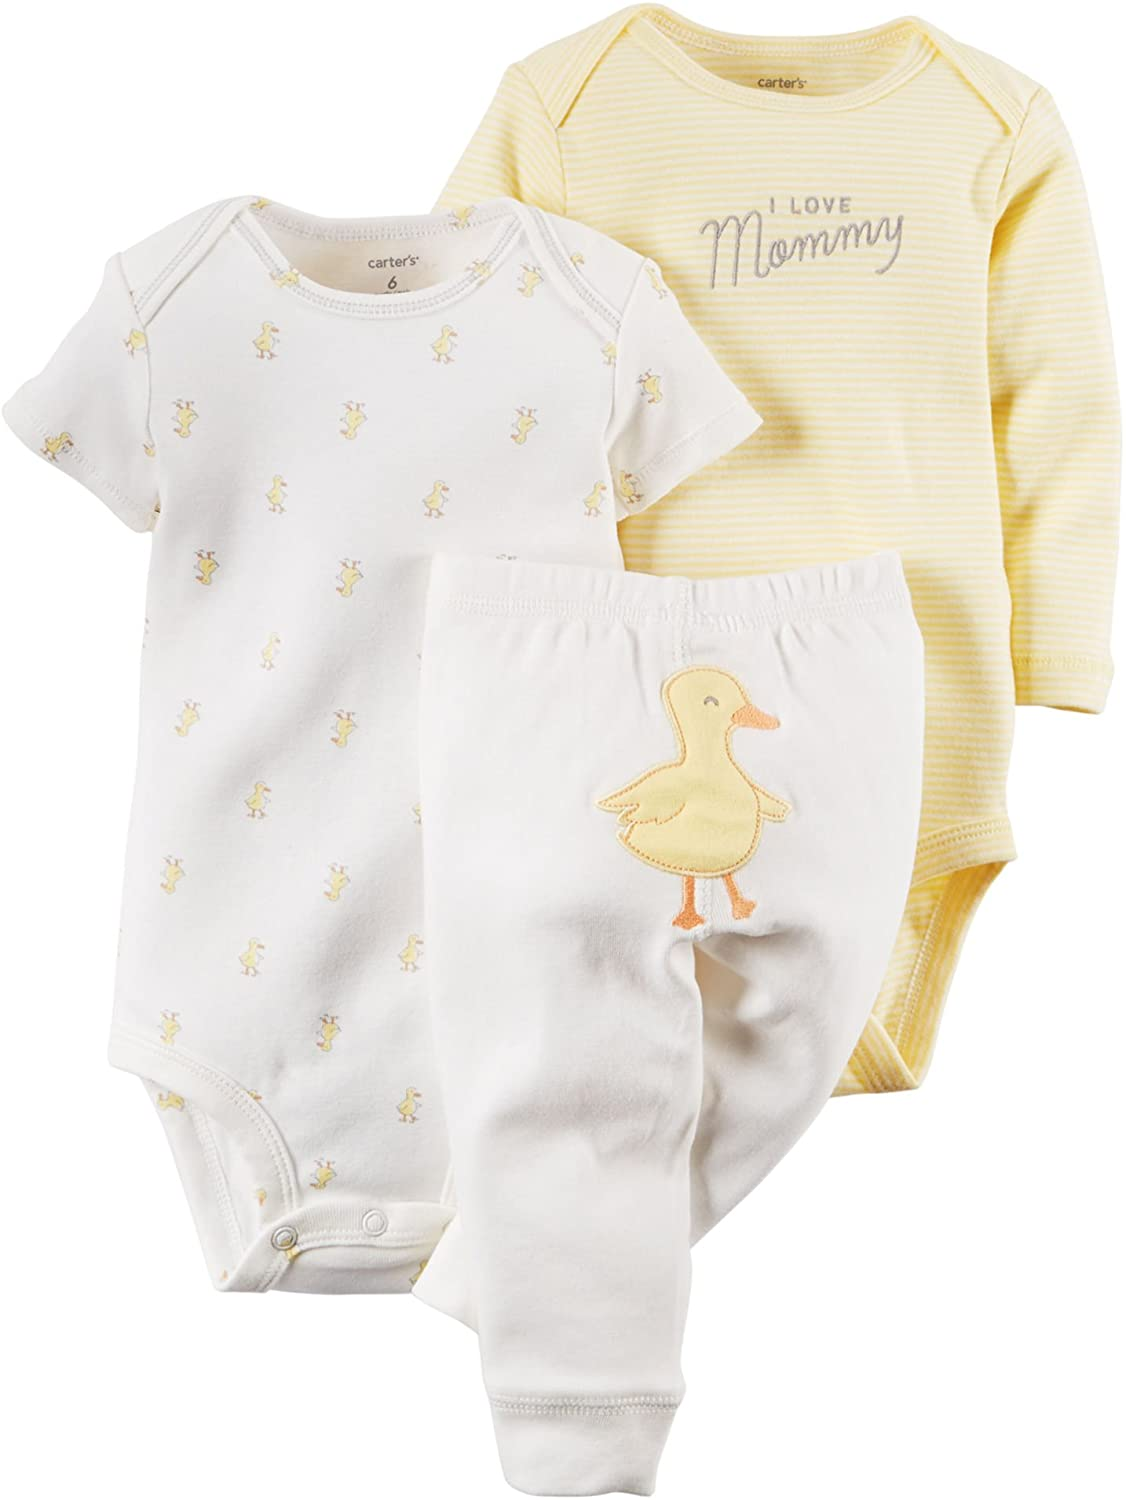 Carter's Unisex Baby 3 Piece Take Me Away Set (Baby) - Duck - 12M